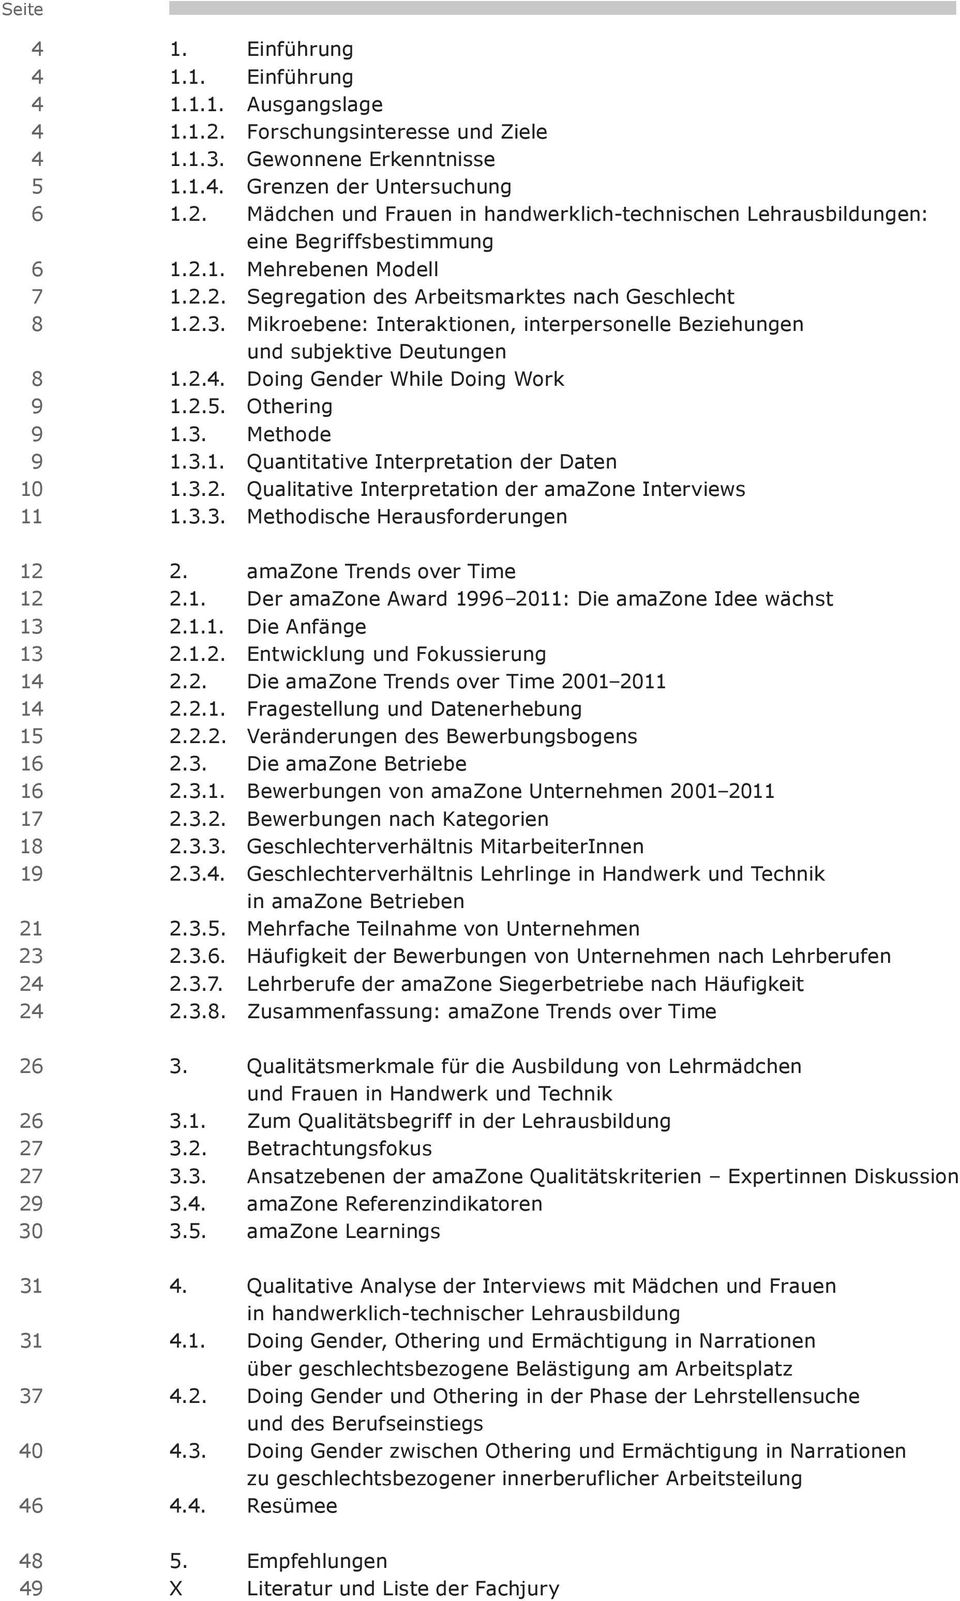 2.3. Mikroebene: Interaktionen, interpersonelle Beziehungen und subjektive Deutungen 1.2.4. Doing Gender While Doing Work 1.2.5. Othering 1.3. Methode 1.3.1. Quantitative Interpretation der Daten 1.3.2. Qualitative Interpretation der amazone Interviews 1.